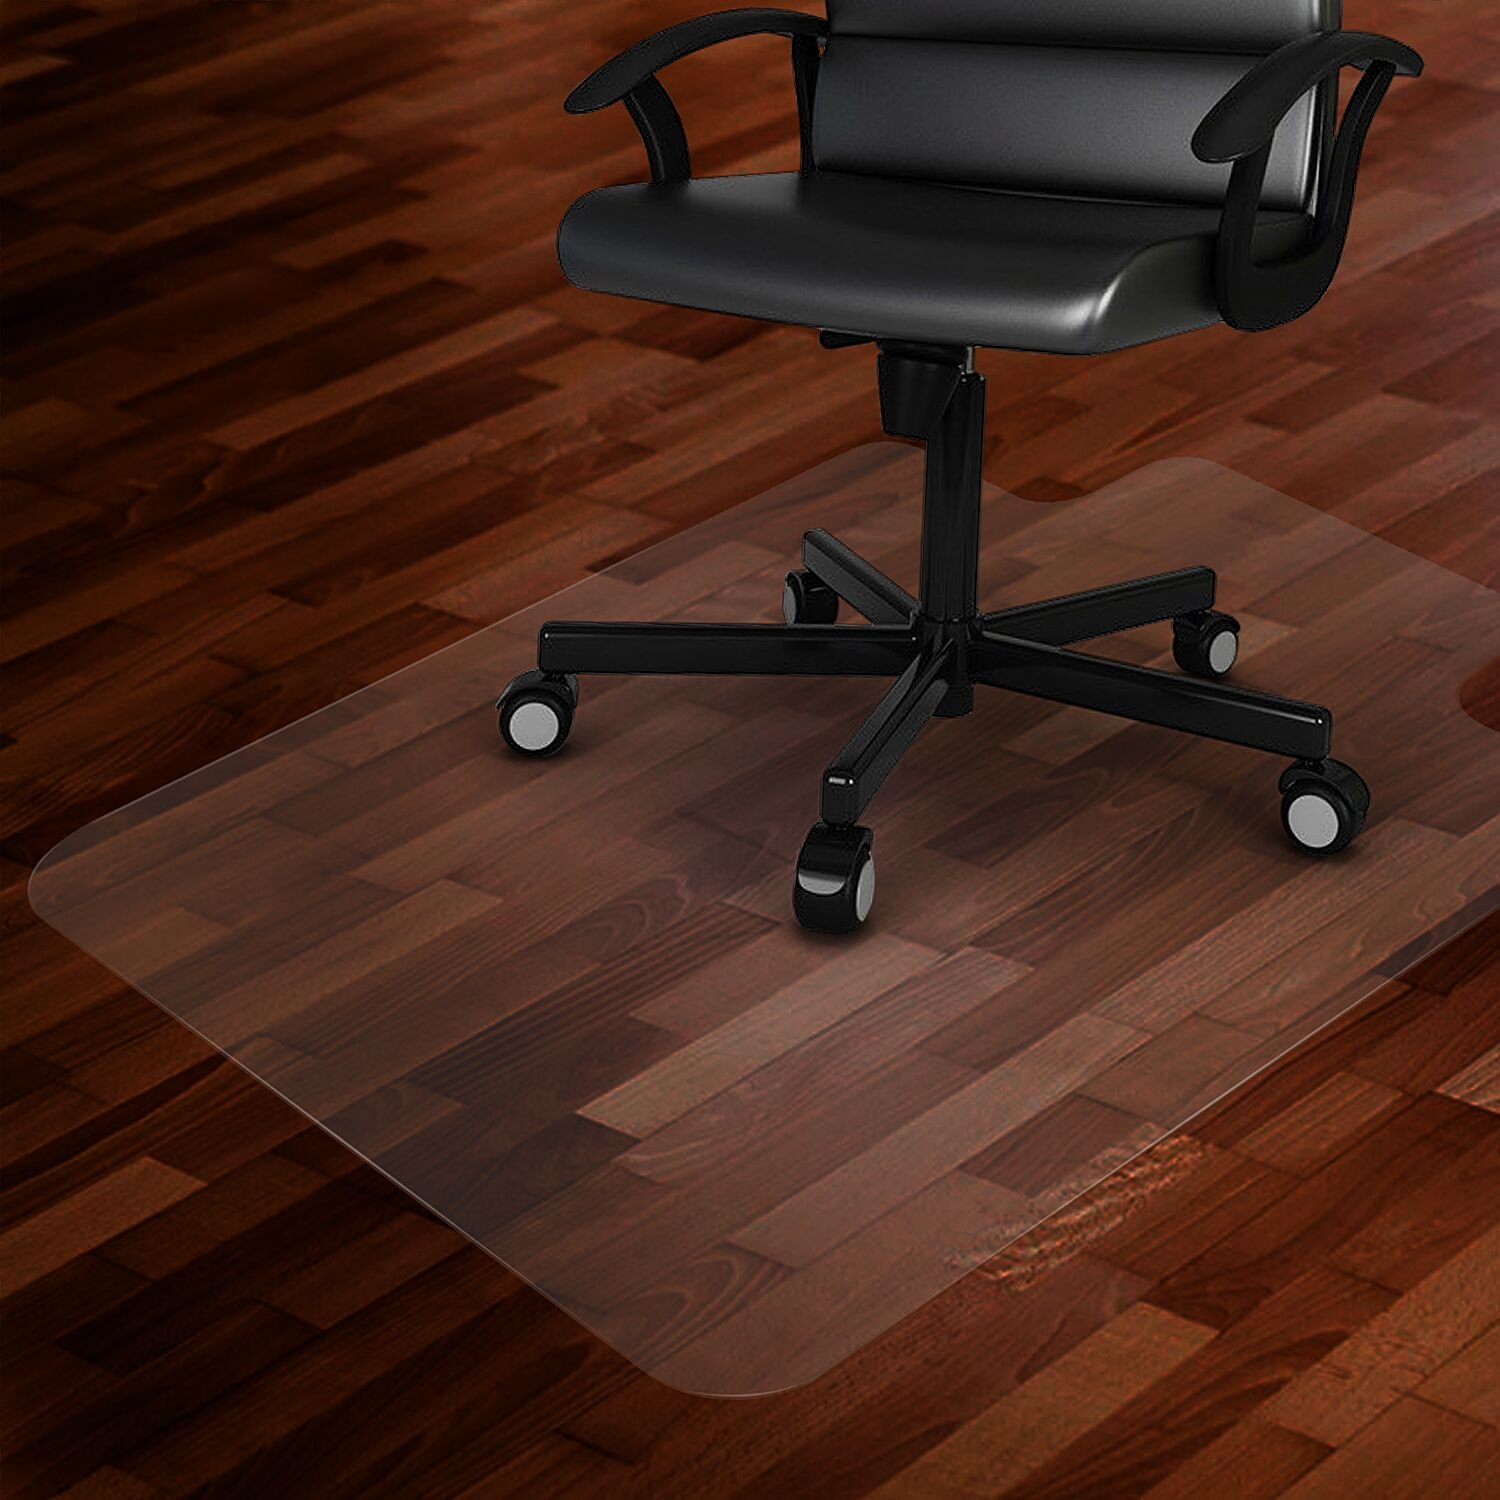 Azadx Office/Home Desk Chair Mat PVC Dull Polish Chairmat Protection Floor Mat 36'' X 48'' for Hard Floors ,Multi-purpose Hard Floor Protector,Transparent (36'' X 48'' with Lip) by Azadx